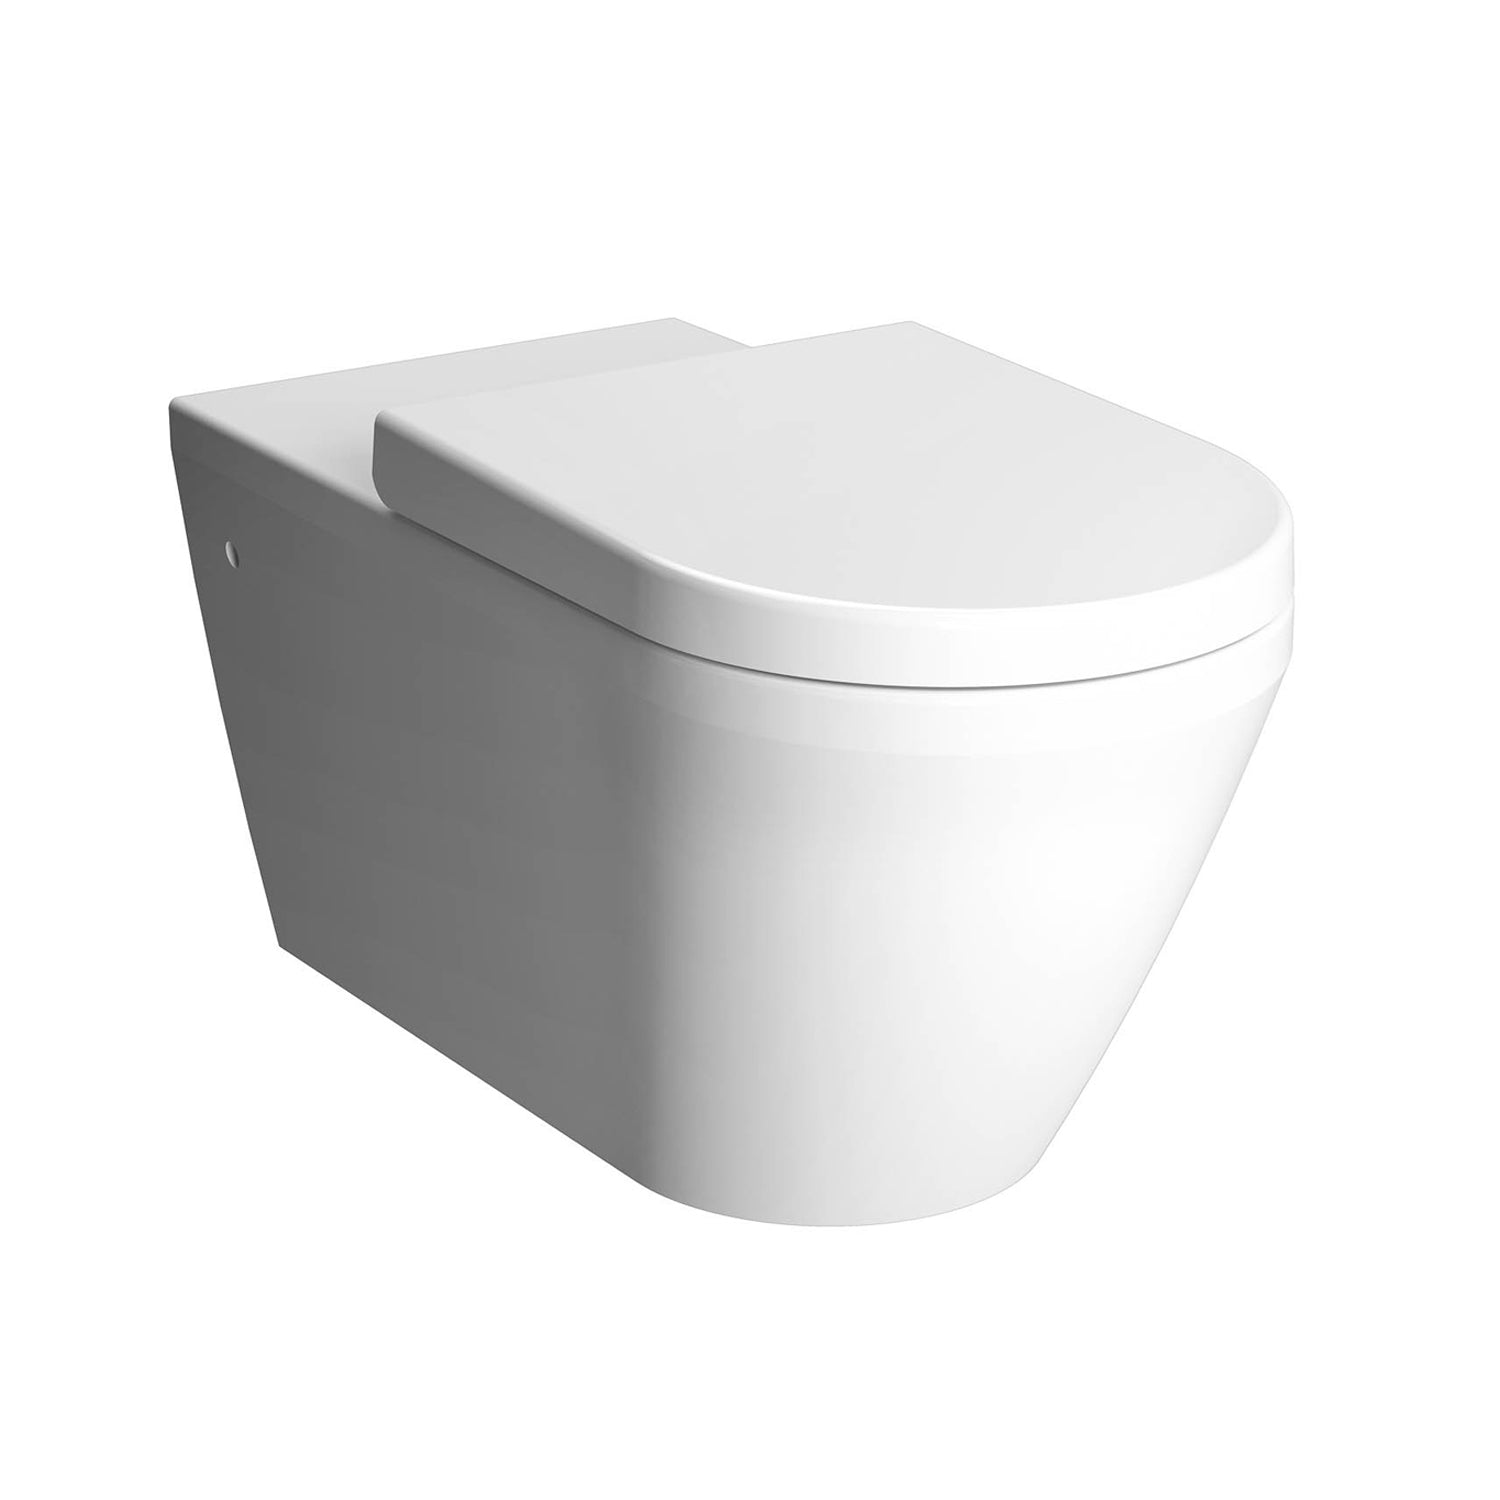 700mm Vesta Long Projection Wall Hung Toilet with a seat and cover on a white background